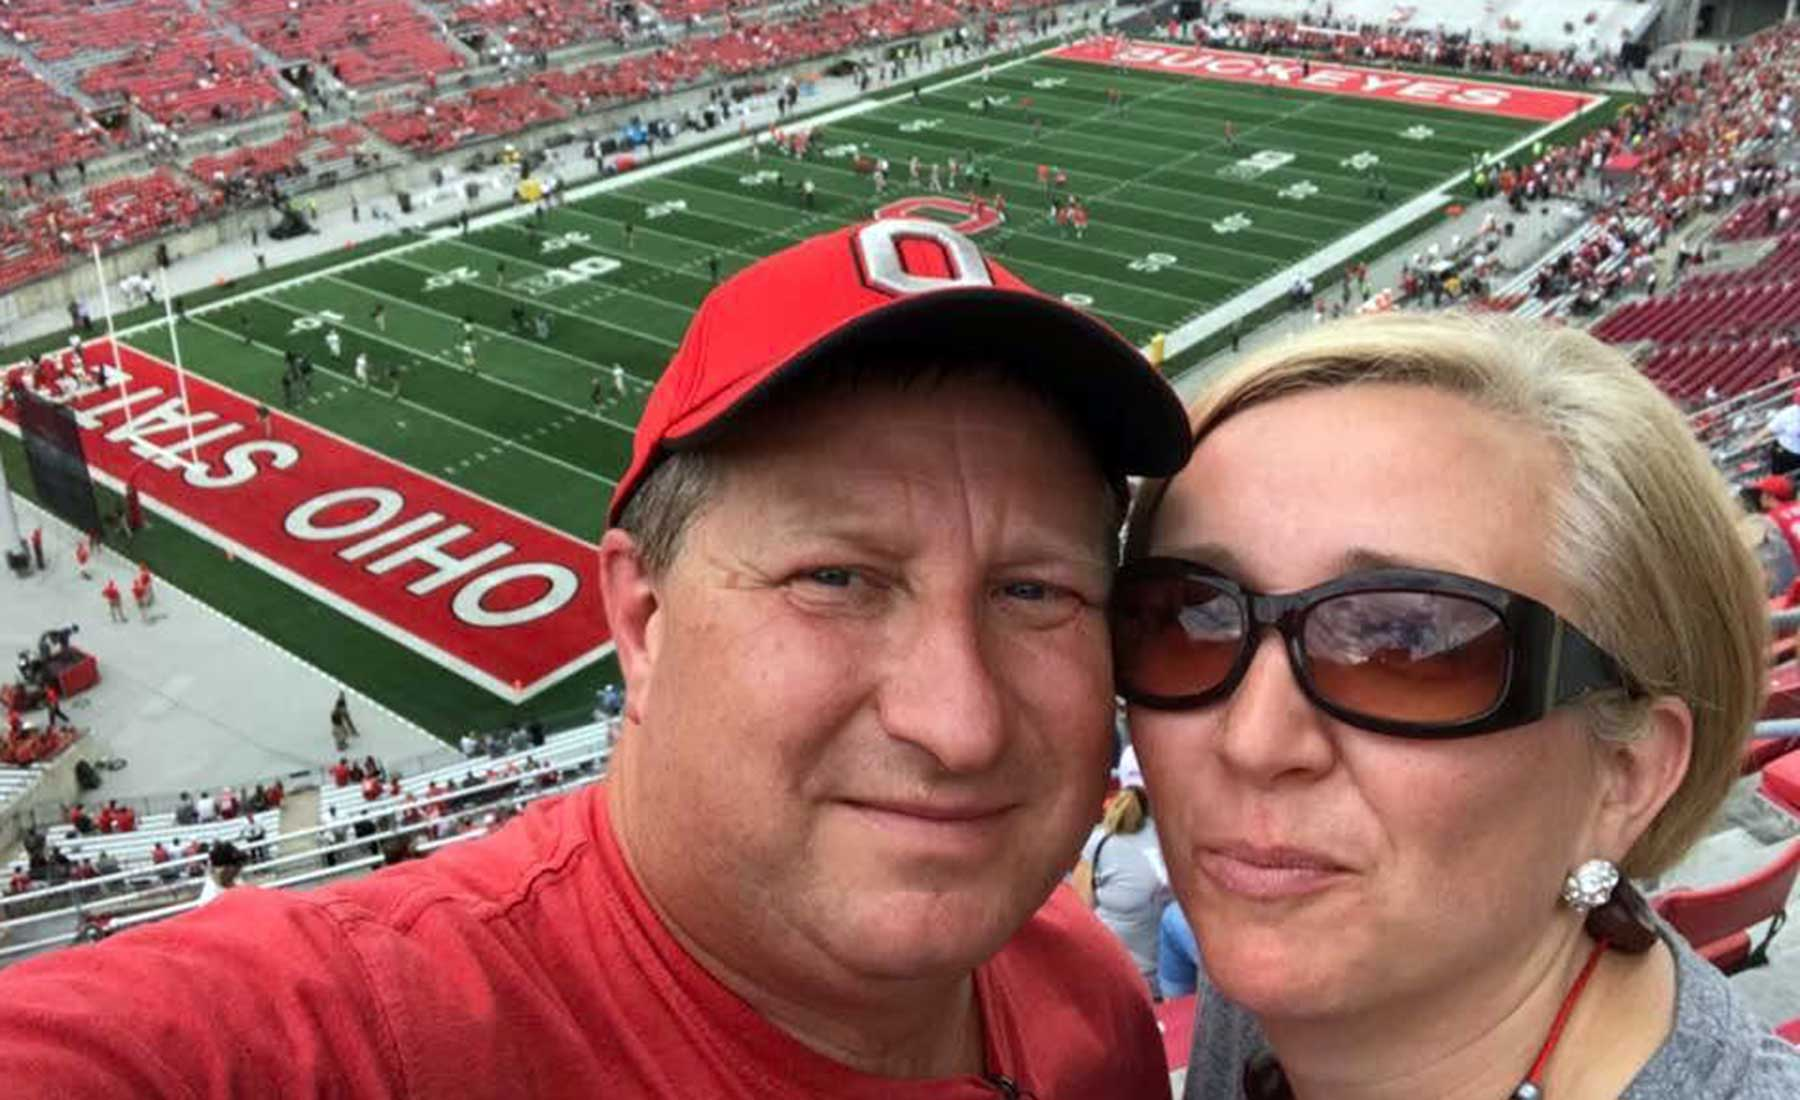 Robin Adams and her husband at an Ohio State football game